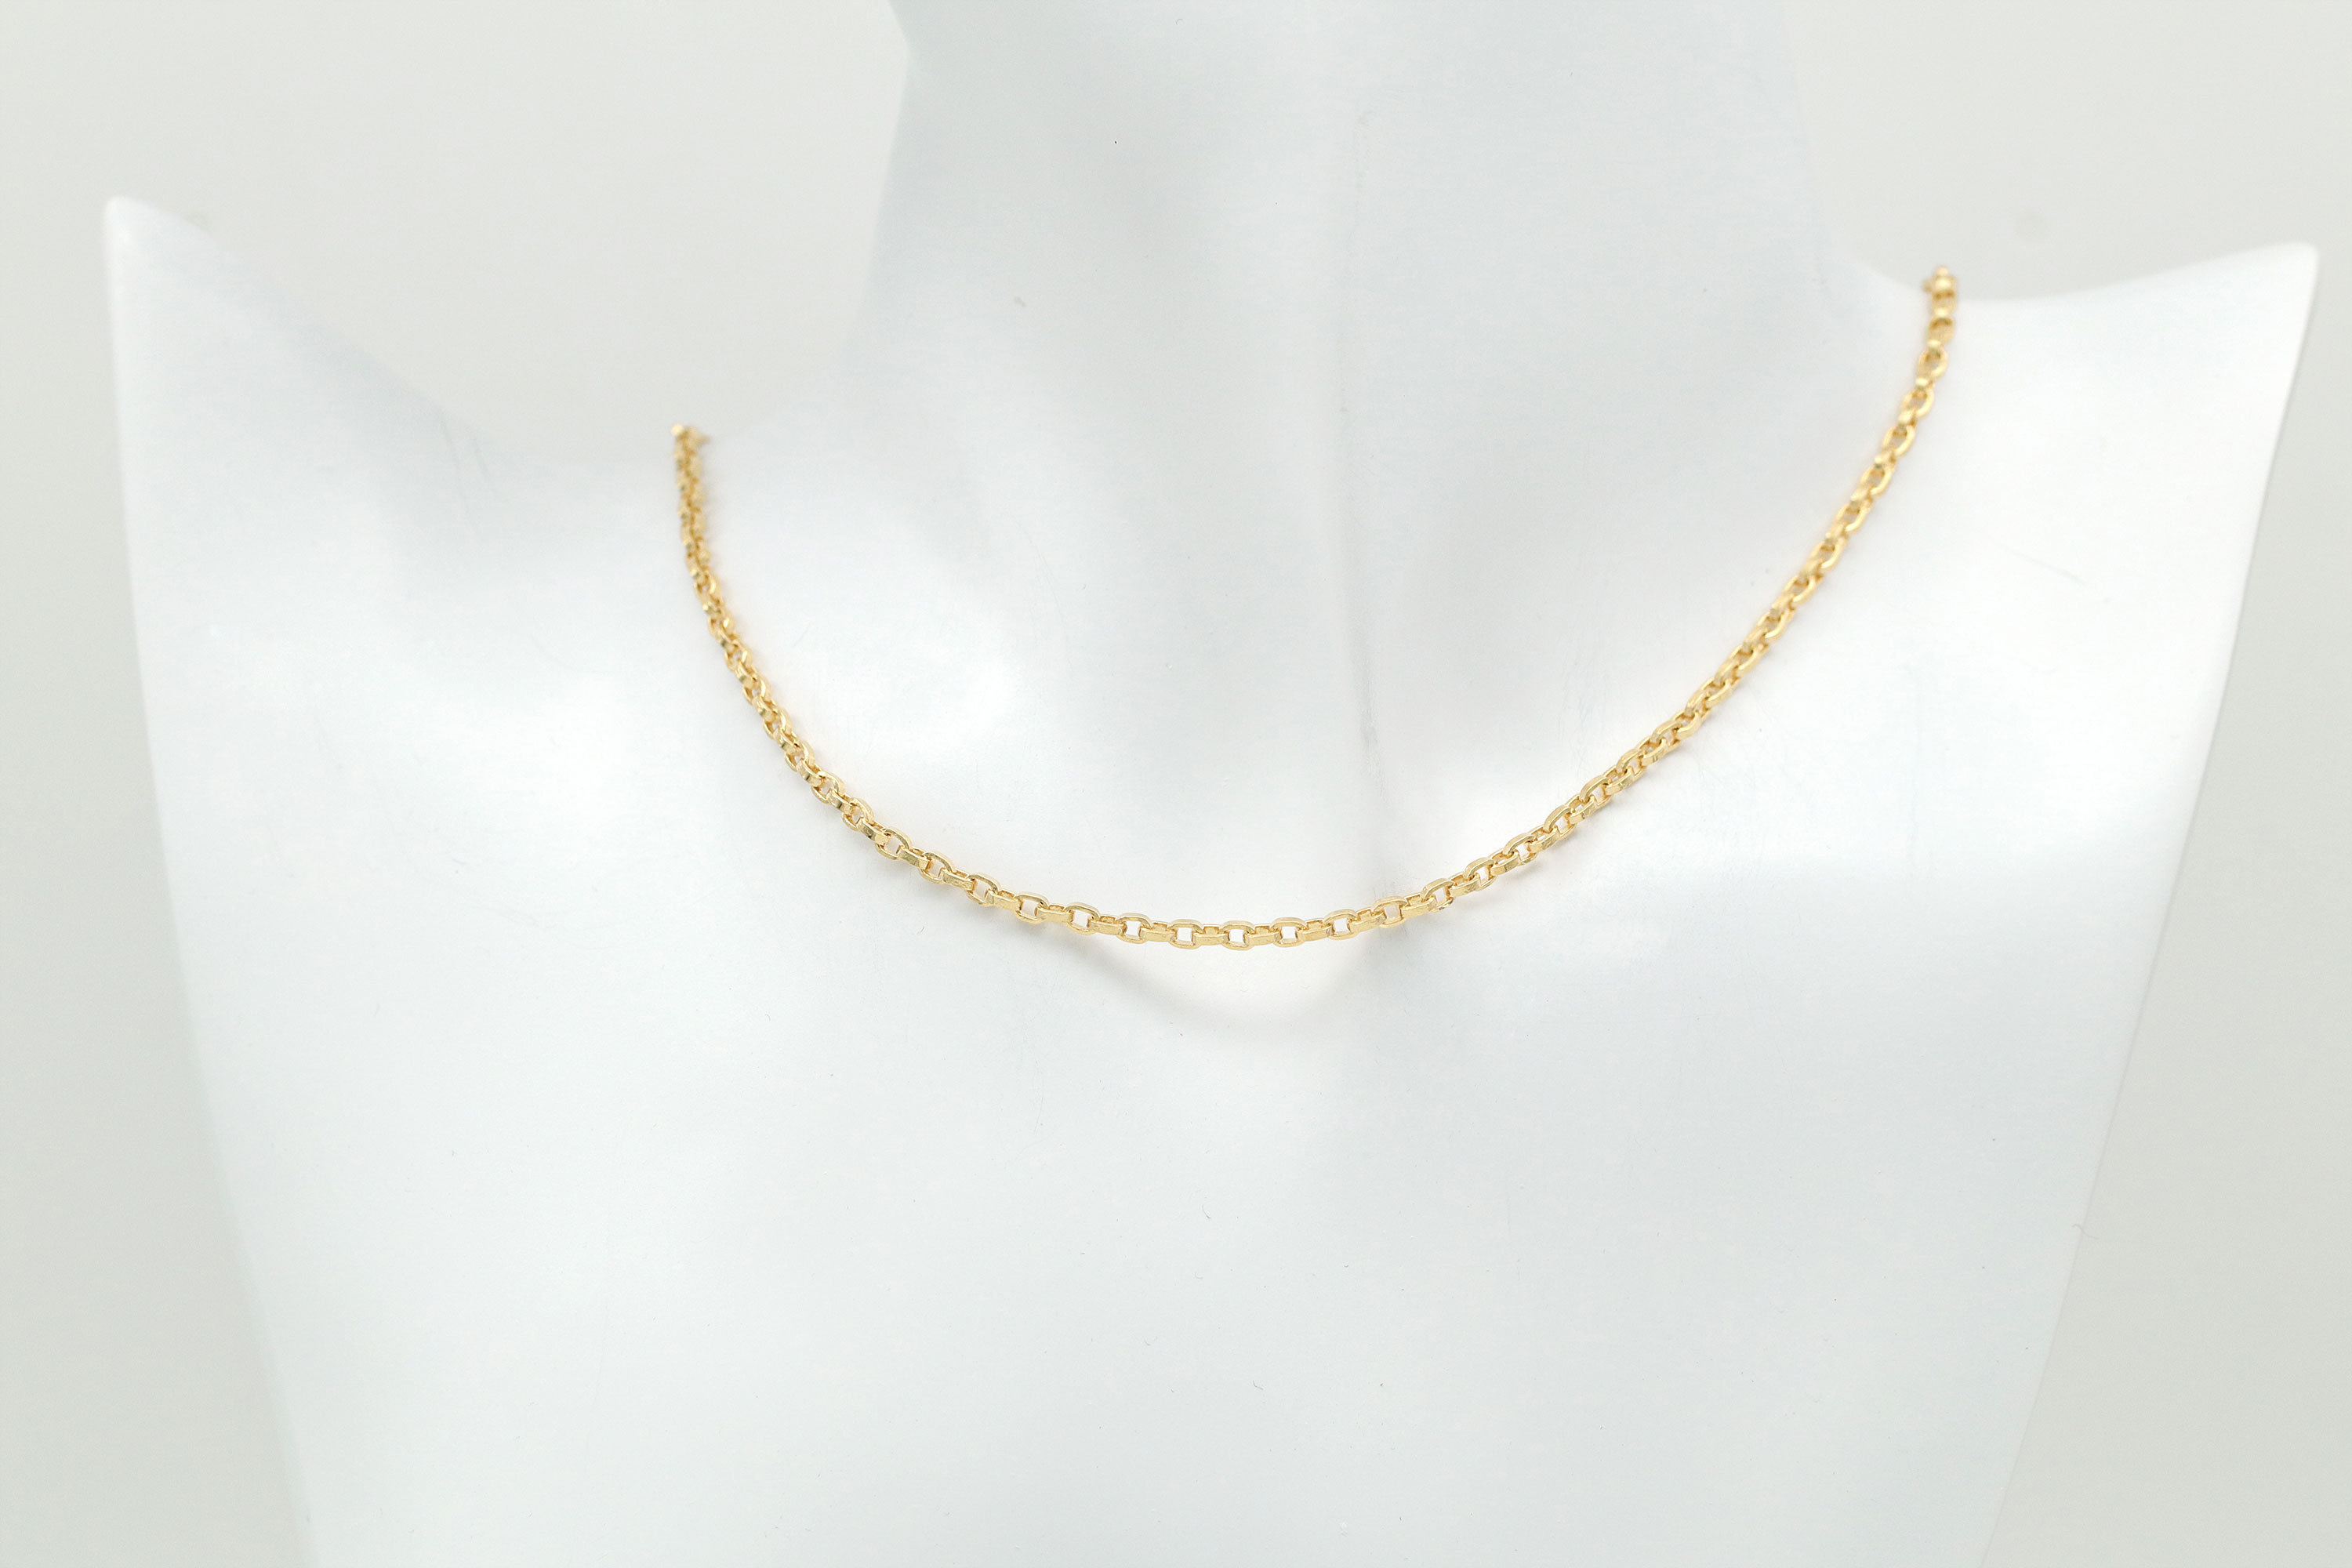 Tiny bold rolo chain necklace for charm, N5111-G1